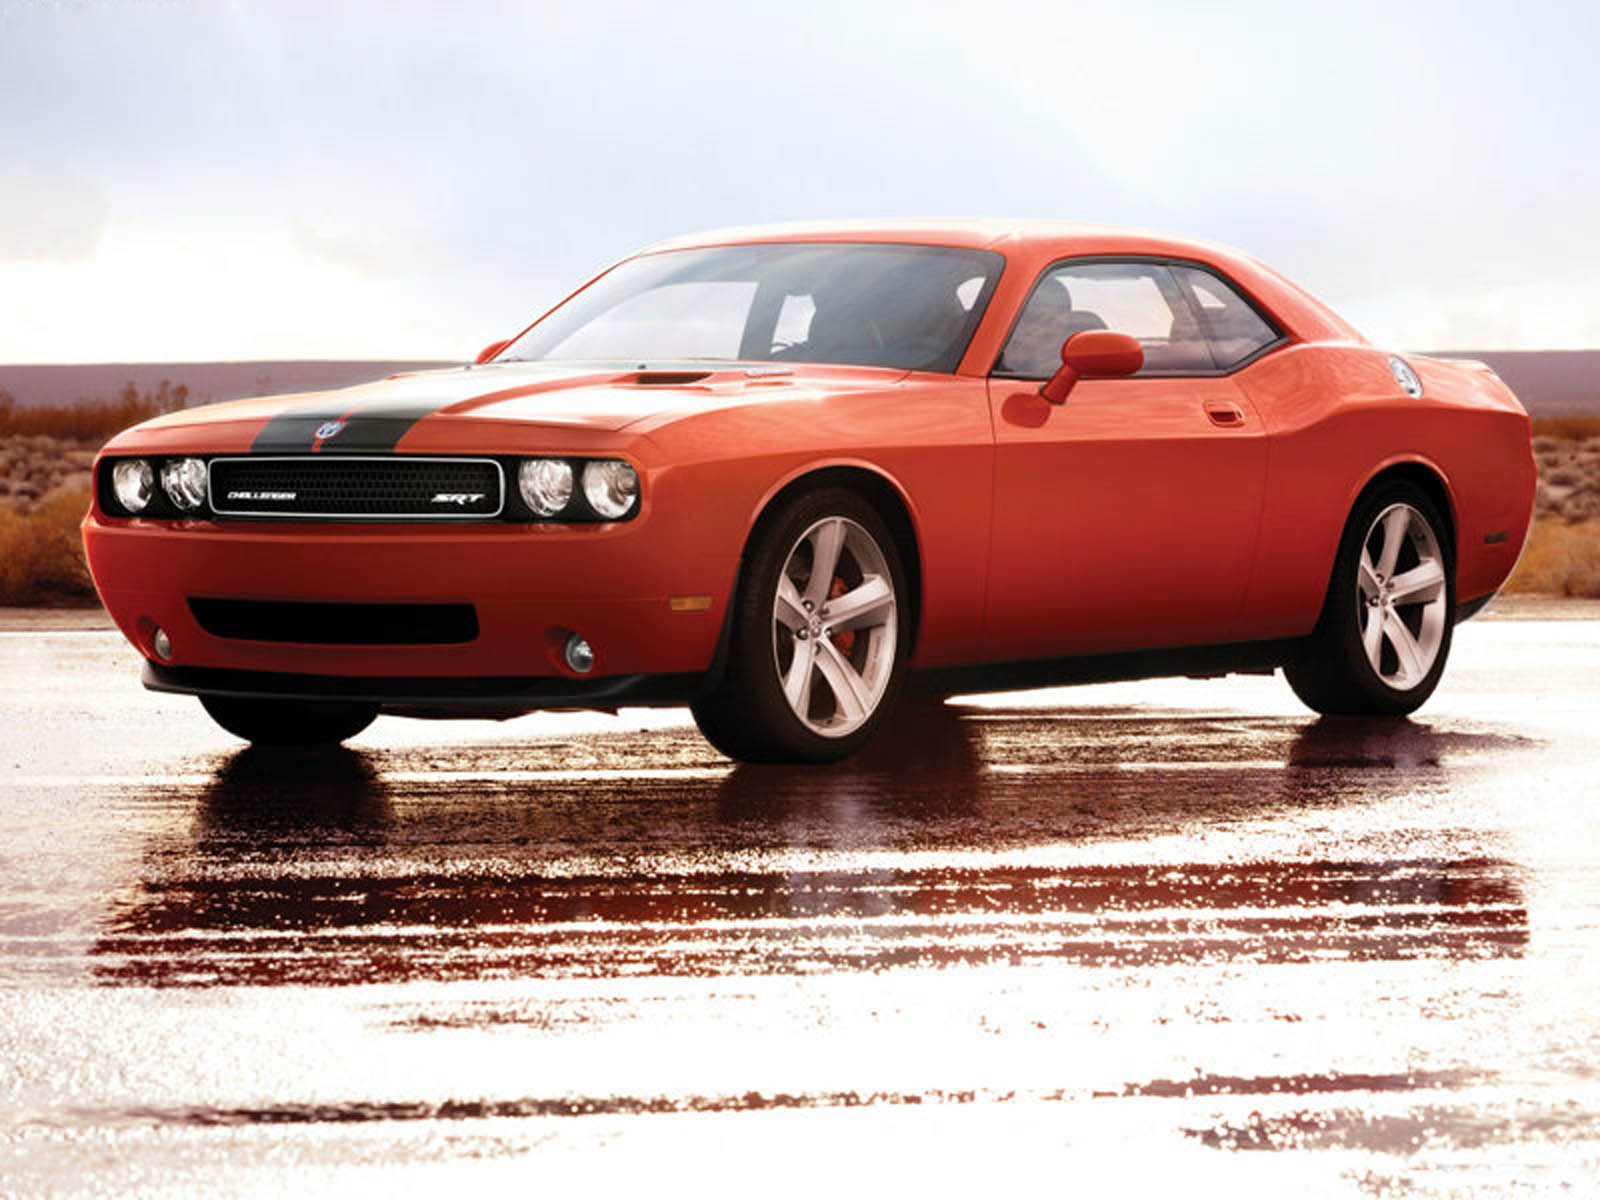 dodge challenger srt8 car salon des refus s. Black Bedroom Furniture Sets. Home Design Ideas